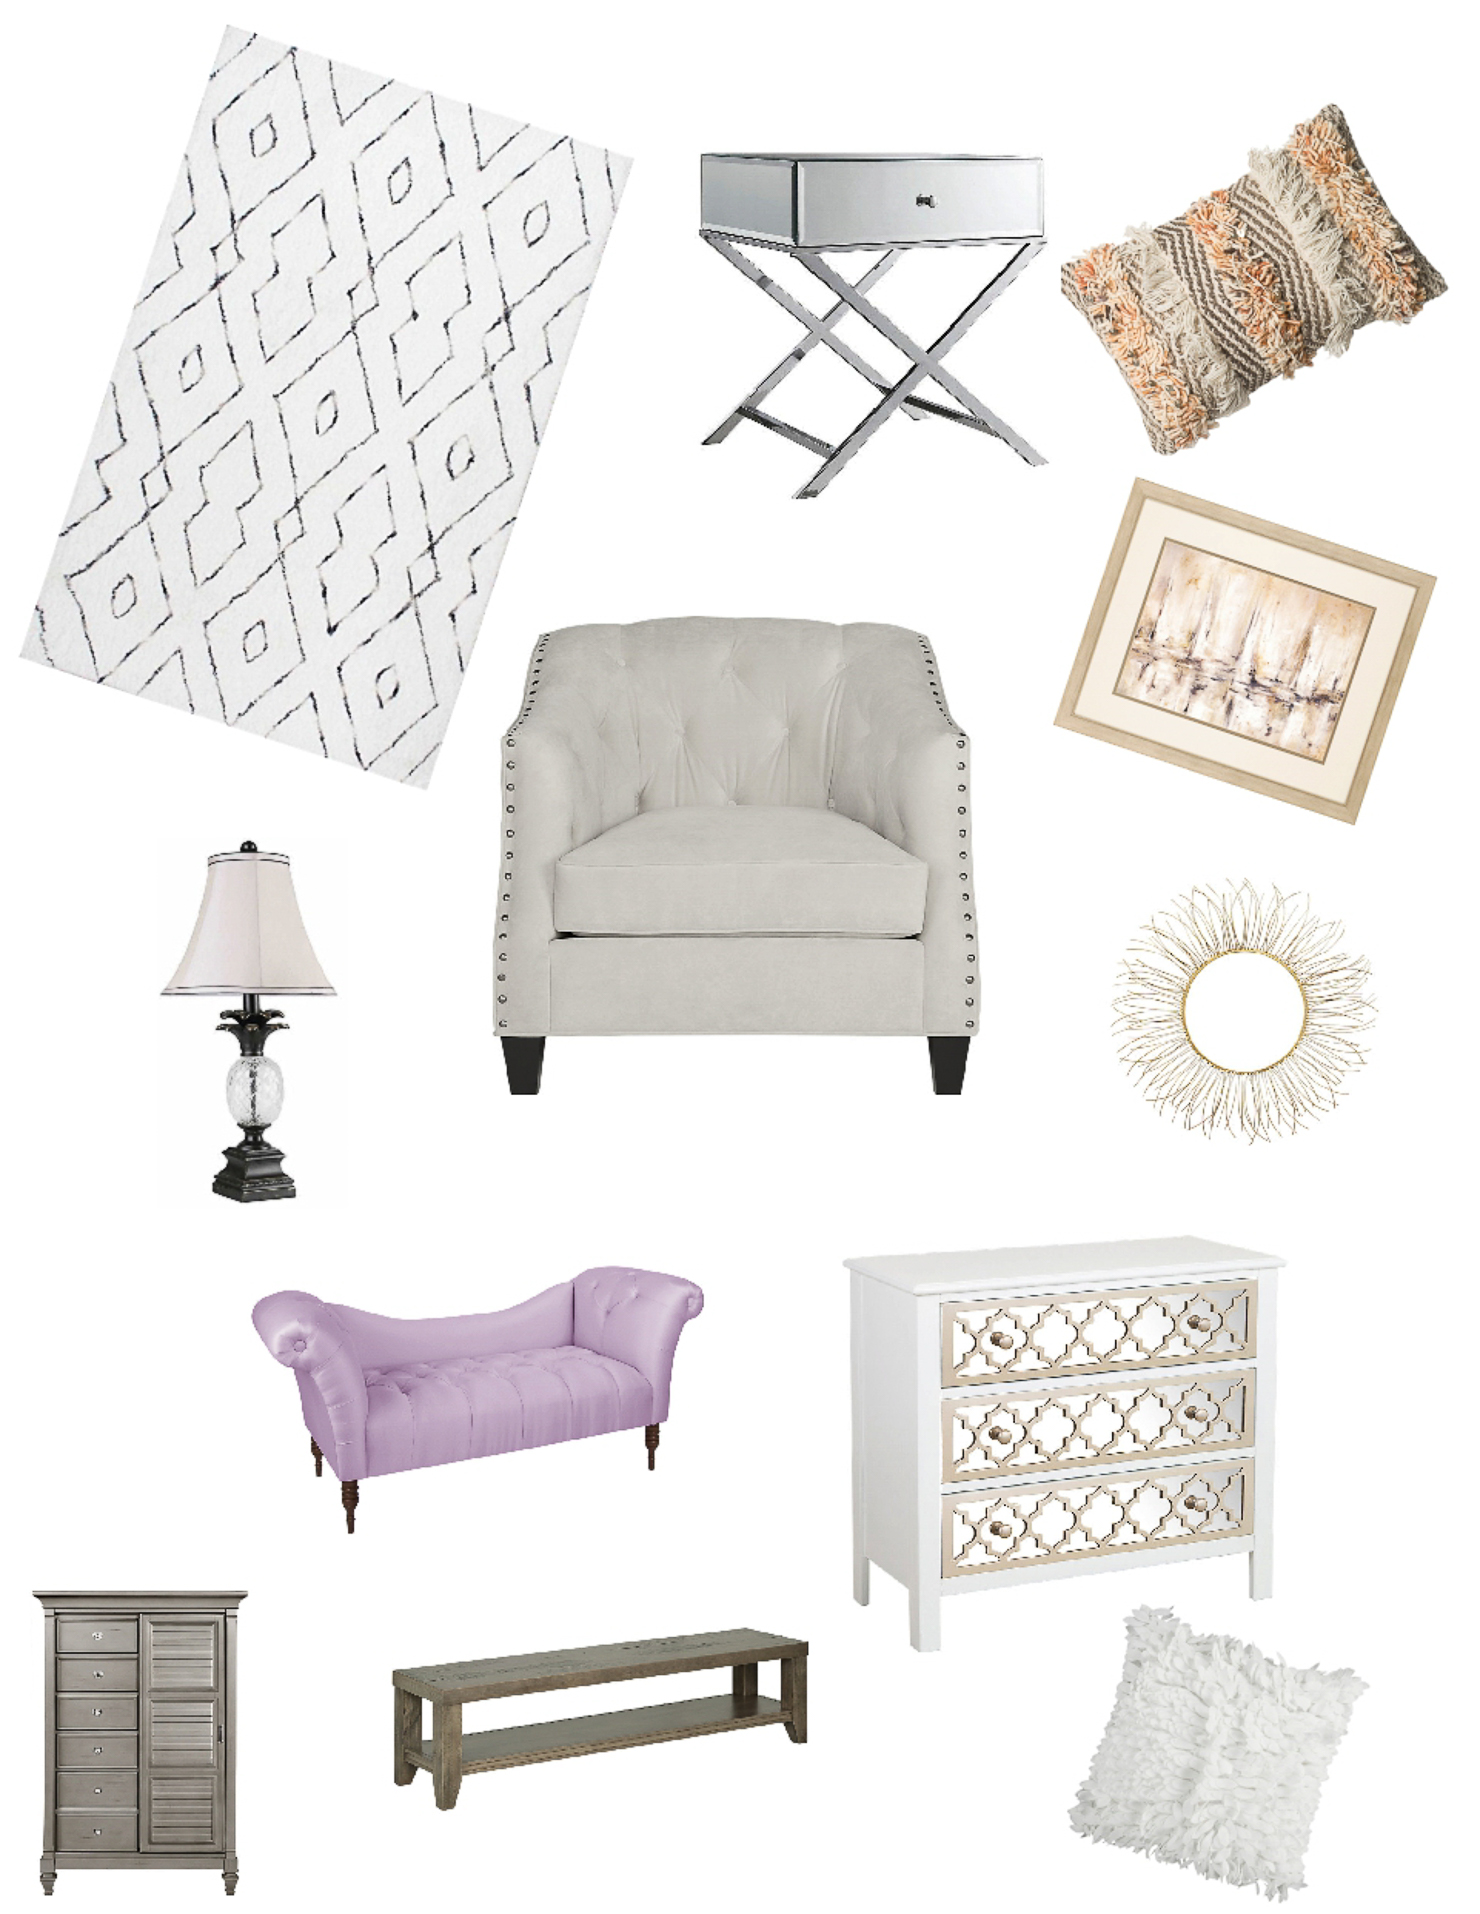 spring home updates with furniture.com, How To Find The Best Furniture Sales In Your Area